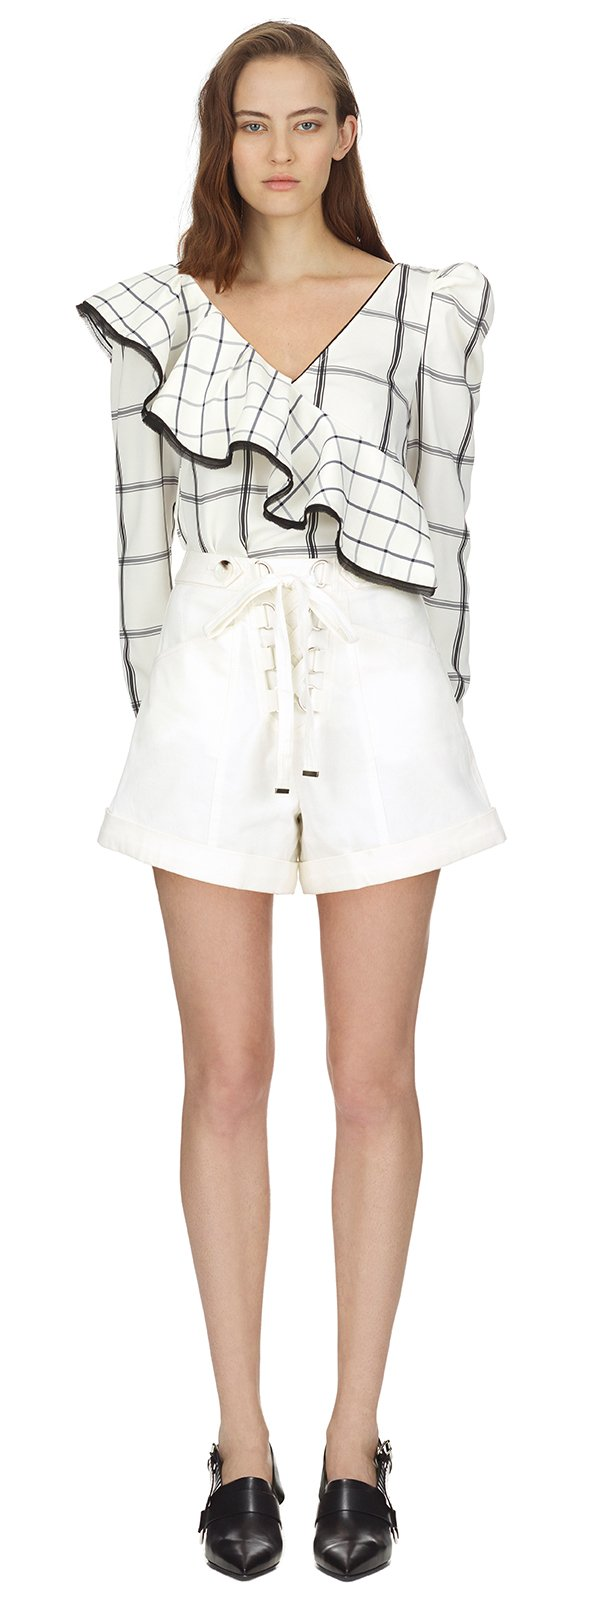 sp18-102-01-Tie Front Canvas Shorts.jpg